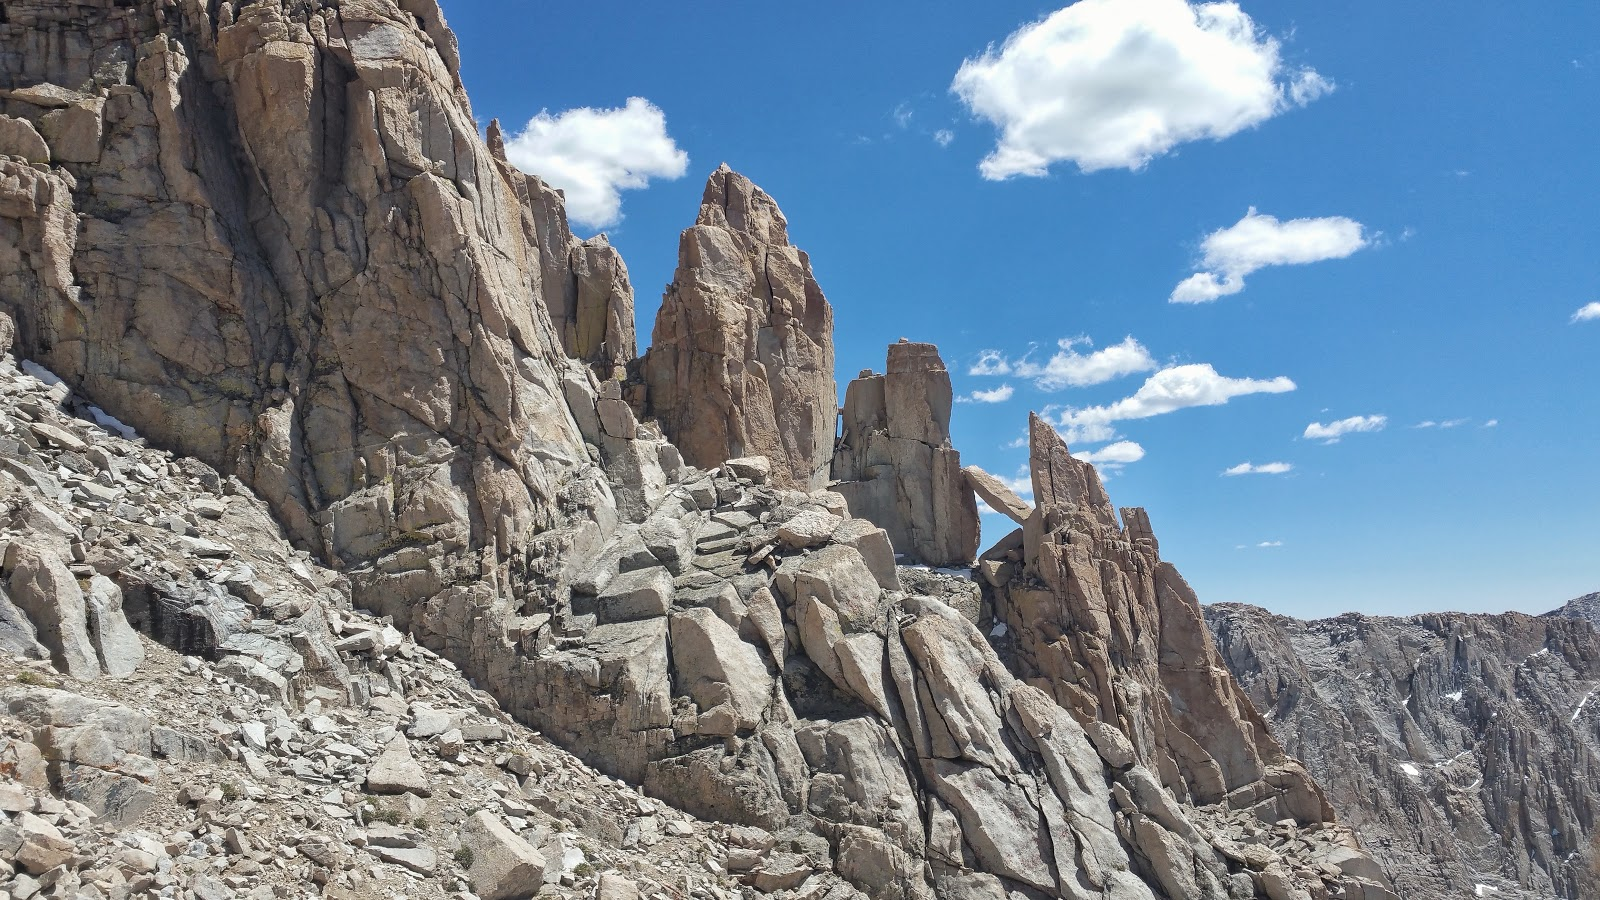 Rocky formations from the climb of Mt. Whitney